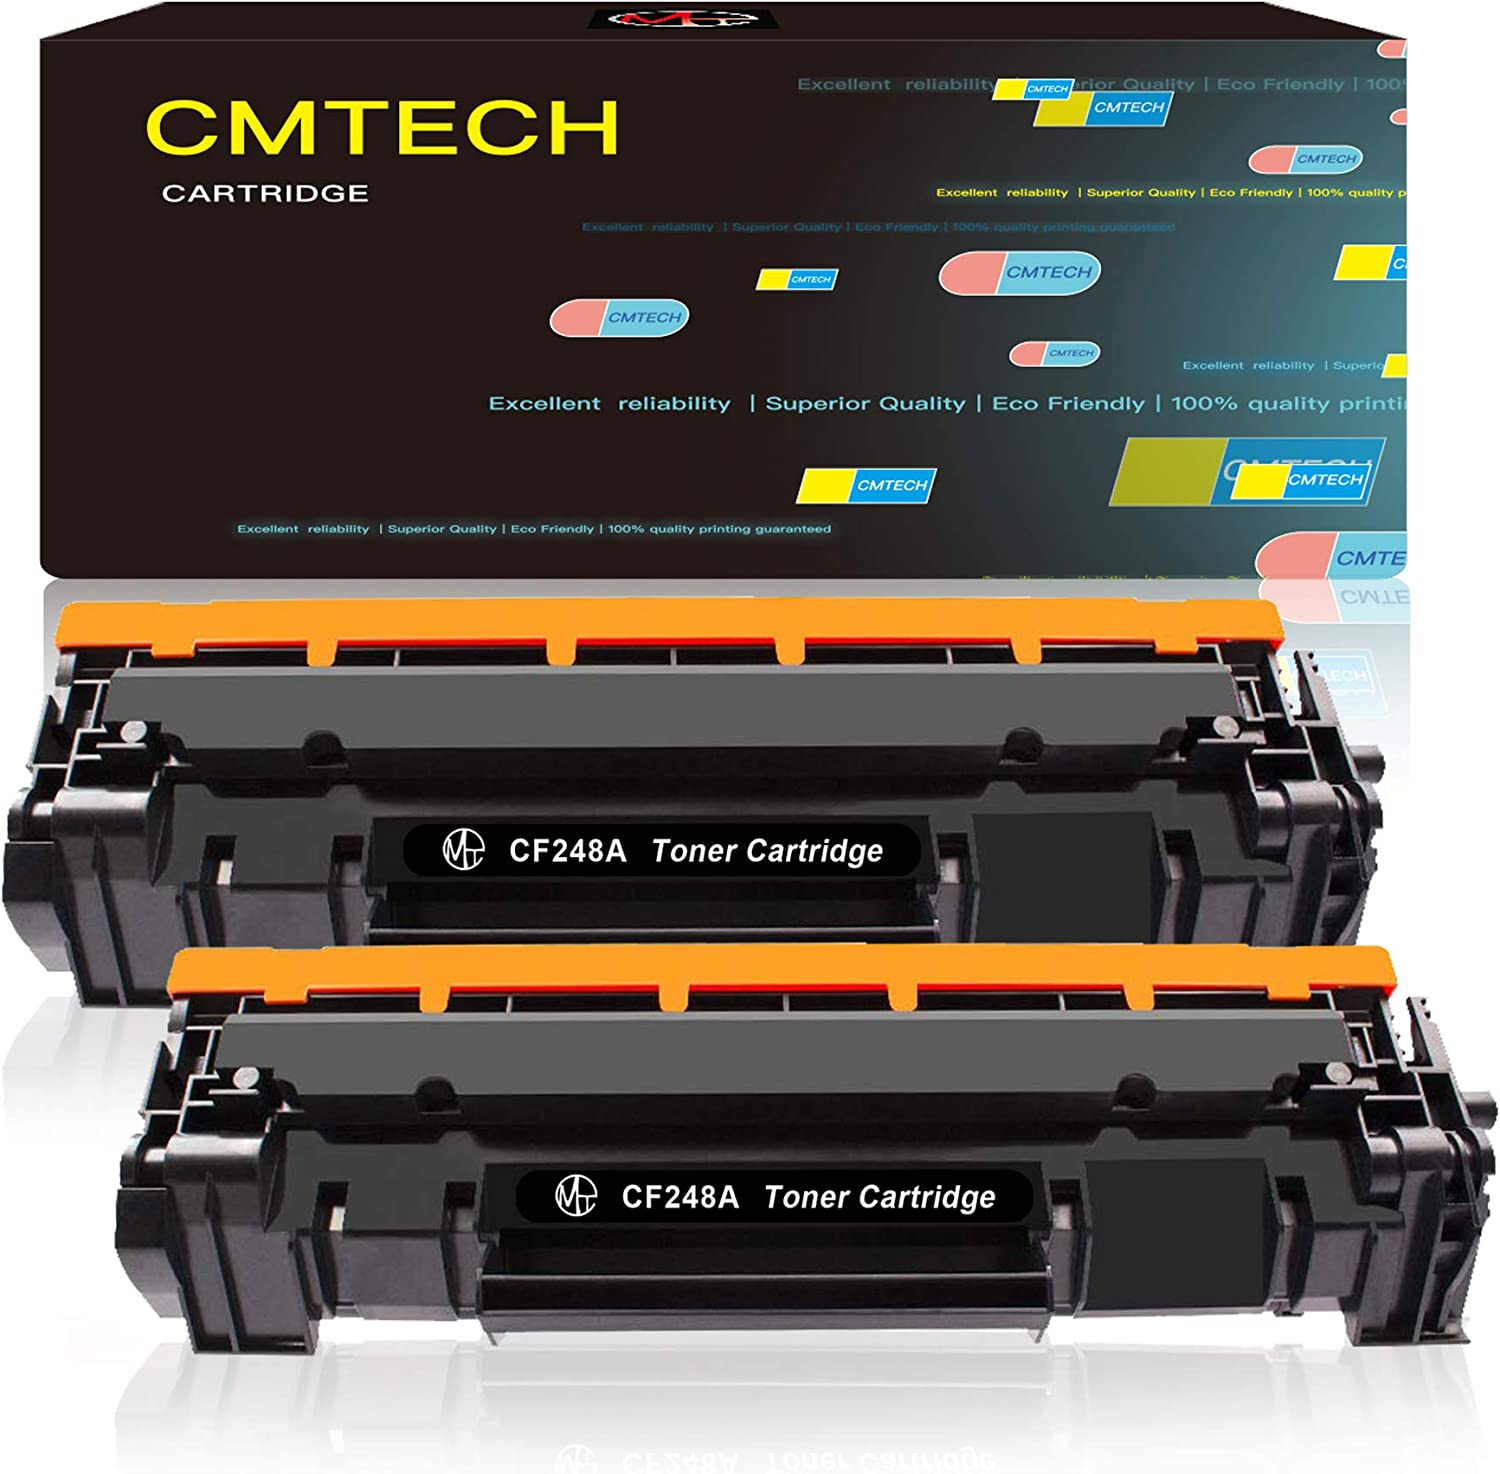 CMTECH Compatible Toner Cartridge Replacement for HP 48A CF248A Work for HP Laserjet Pro M15w M15a, MFP M29w M31w M28w M30w M16w Laser Printer (2 Pack Black, with Chip)